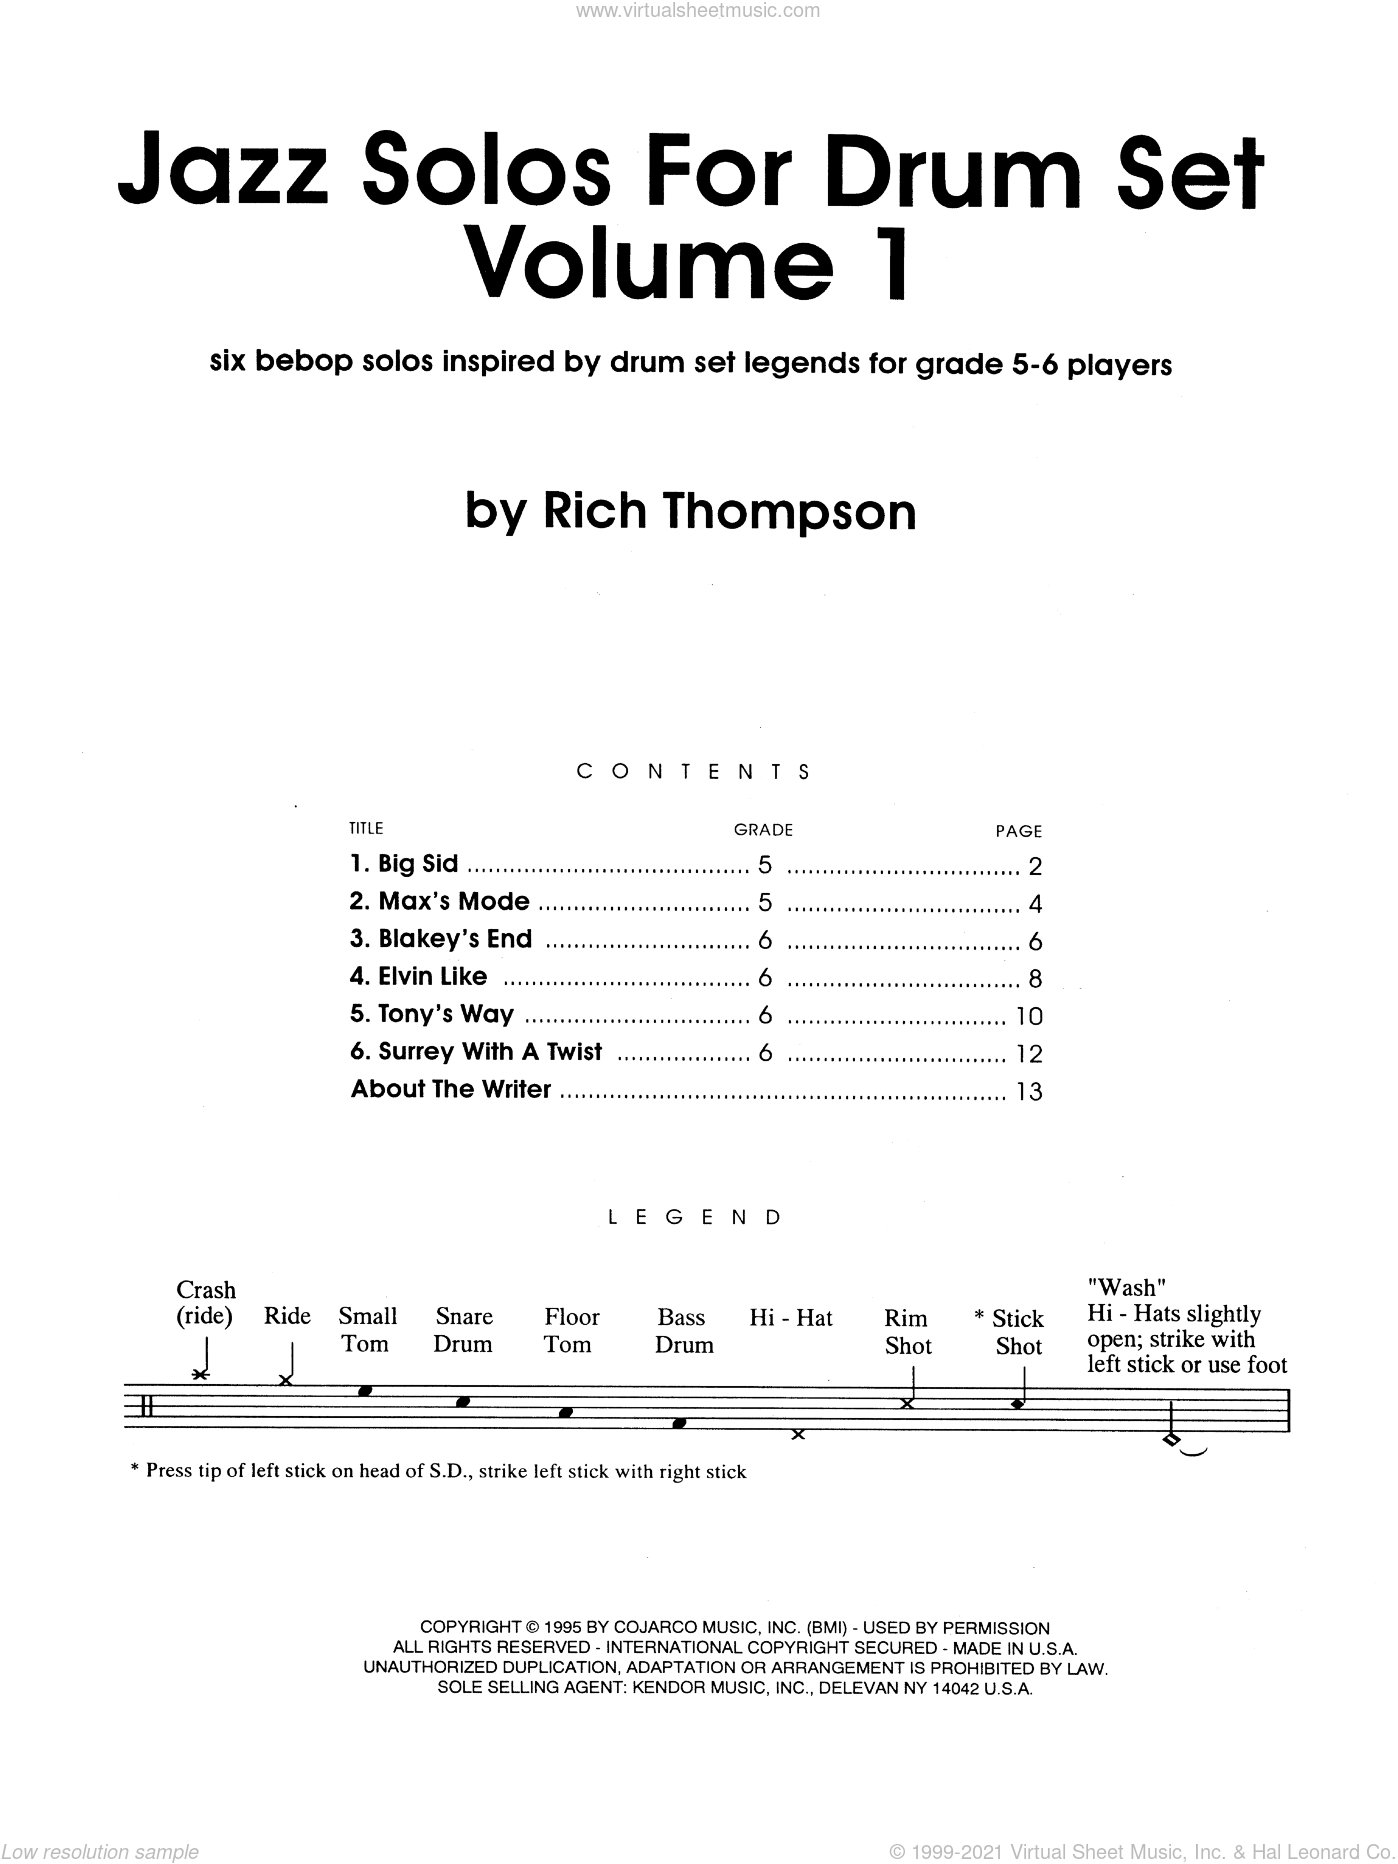 Jazz Solos For Drum Set, Volume 1 sheet music for percussions by Thompson. Score Image Preview.